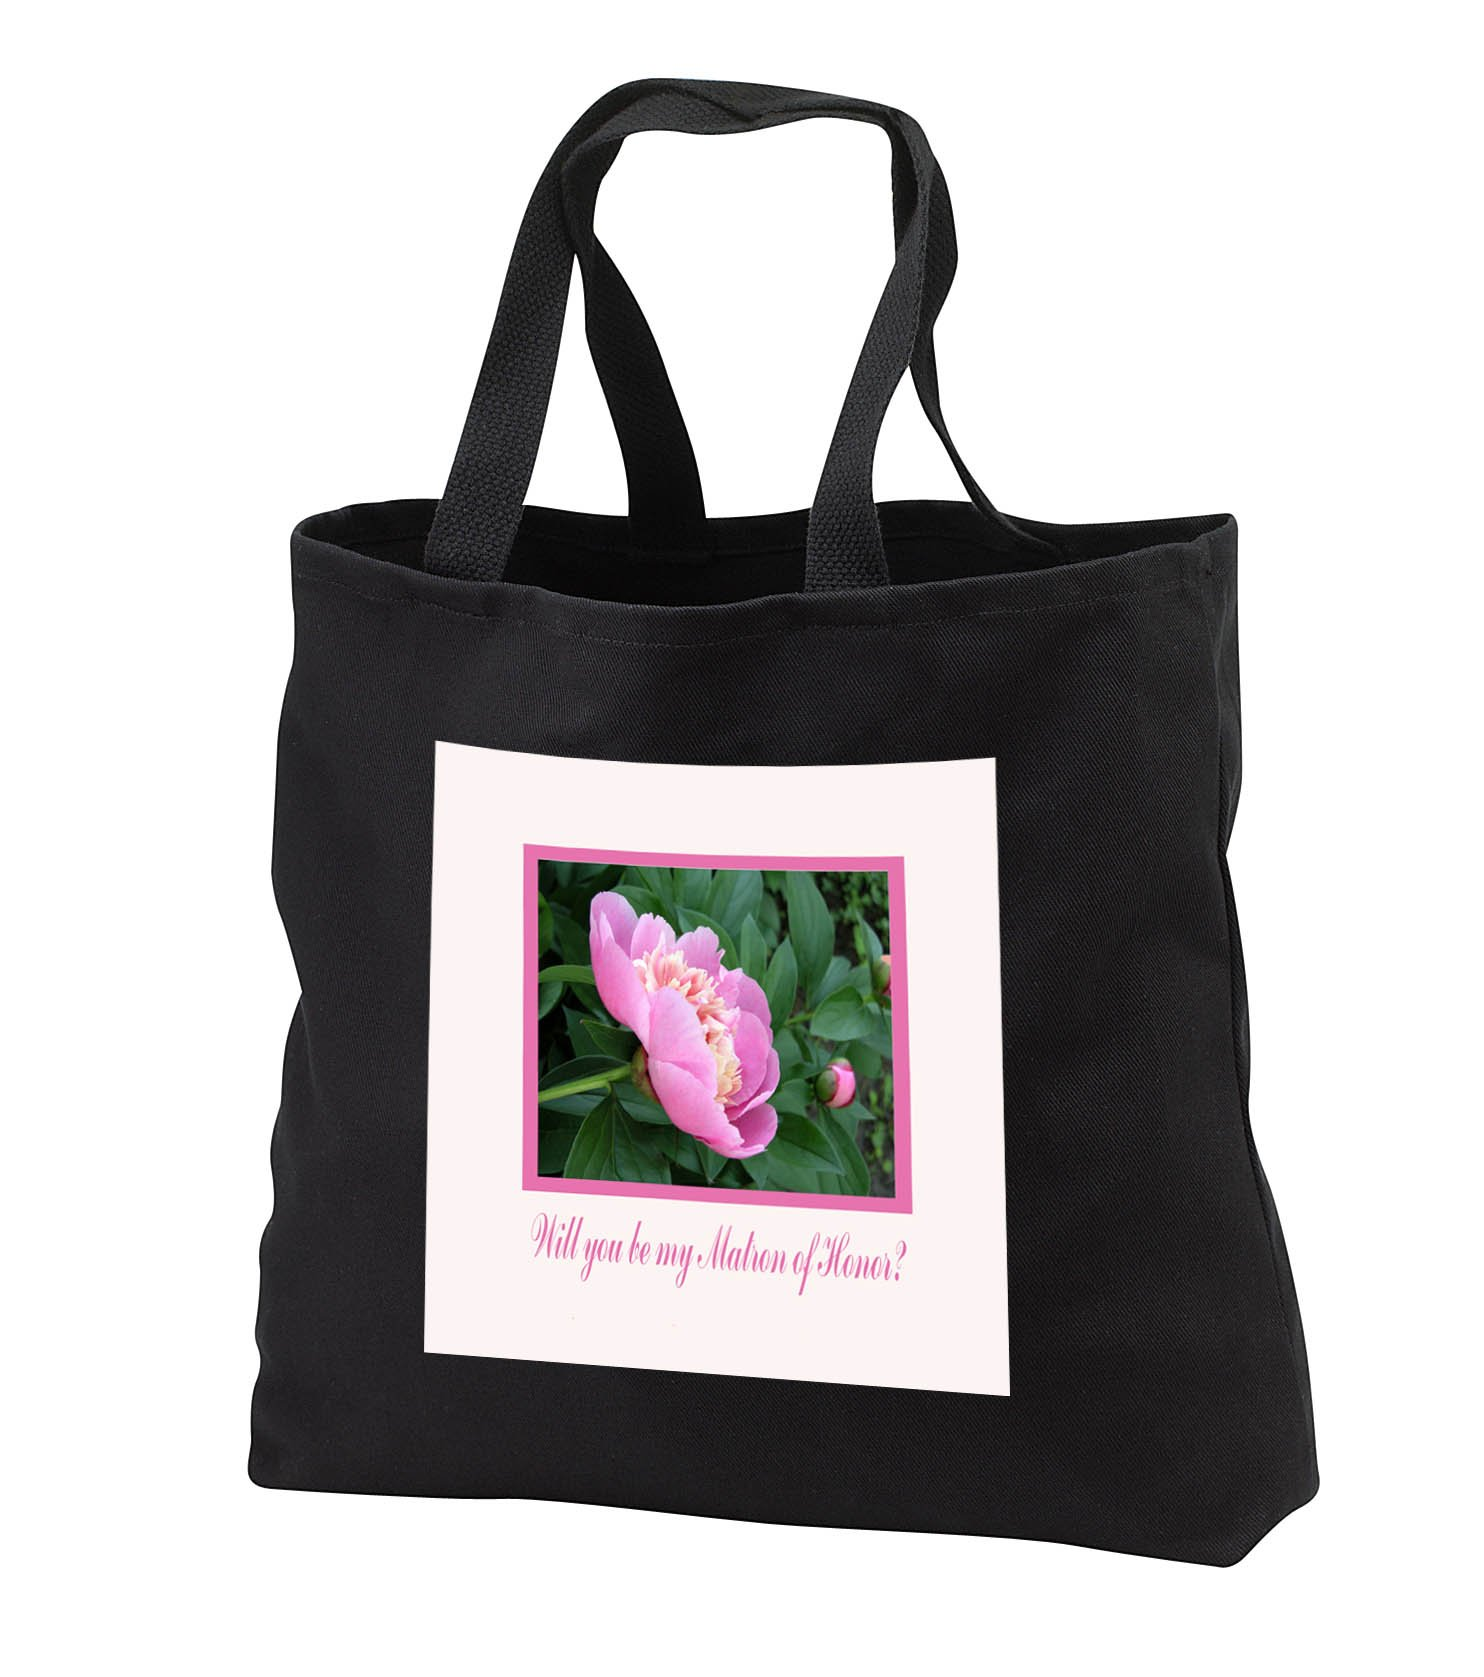 Beverly Turner Wedding Bridal Party Design - Will you be my Matron of Honor, Pink and Yellow Peony Flower - Tote Bags - Black Tote Bag 14w x 14h x 3d (tb_282197_1)